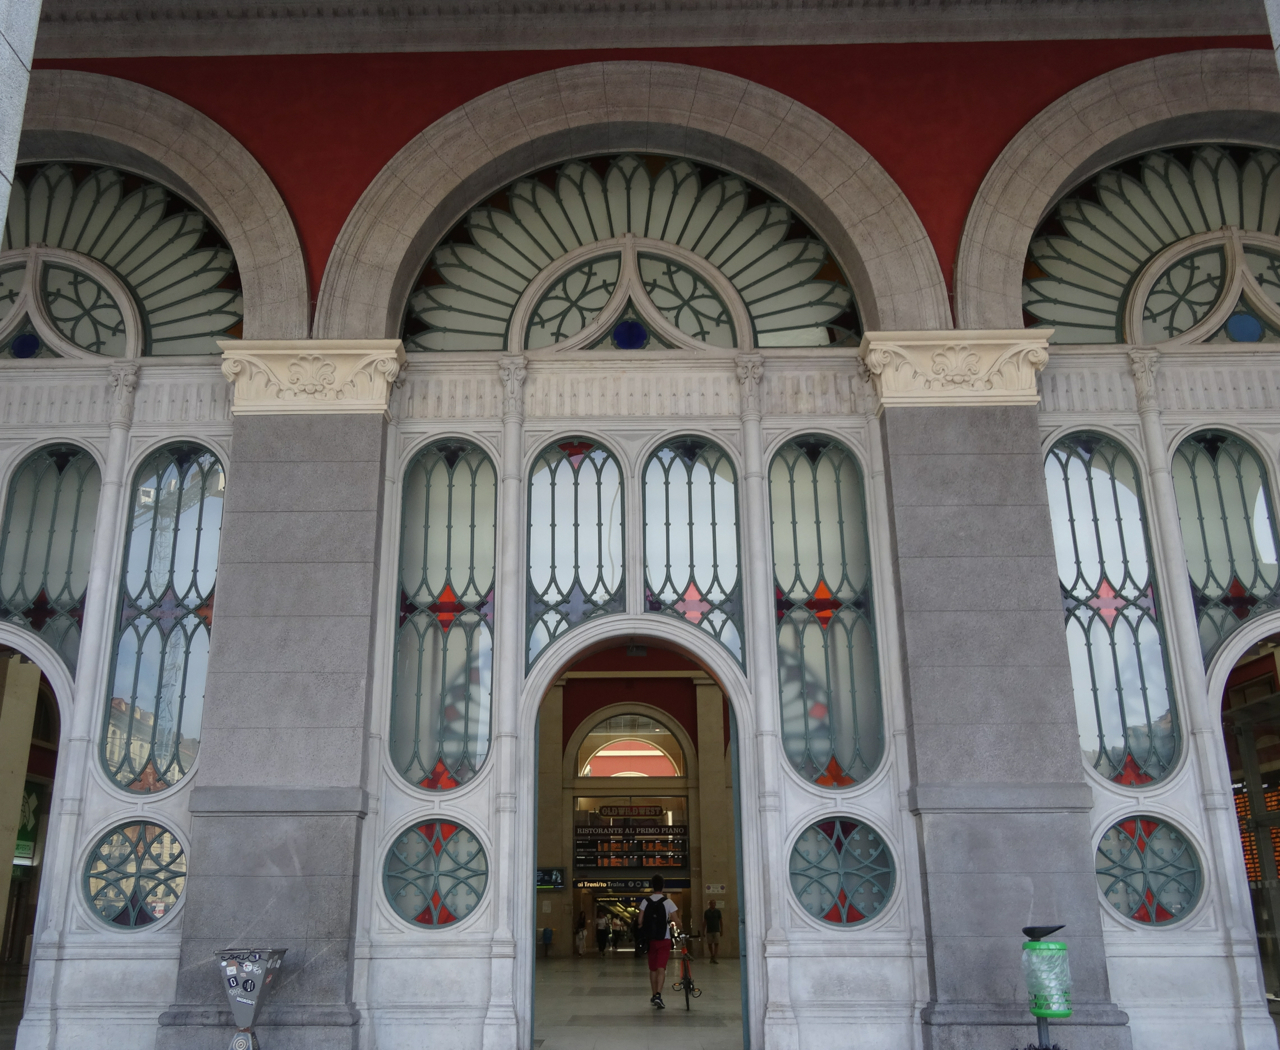 The front entrance to Porta Nuova train station in Turin, Italy